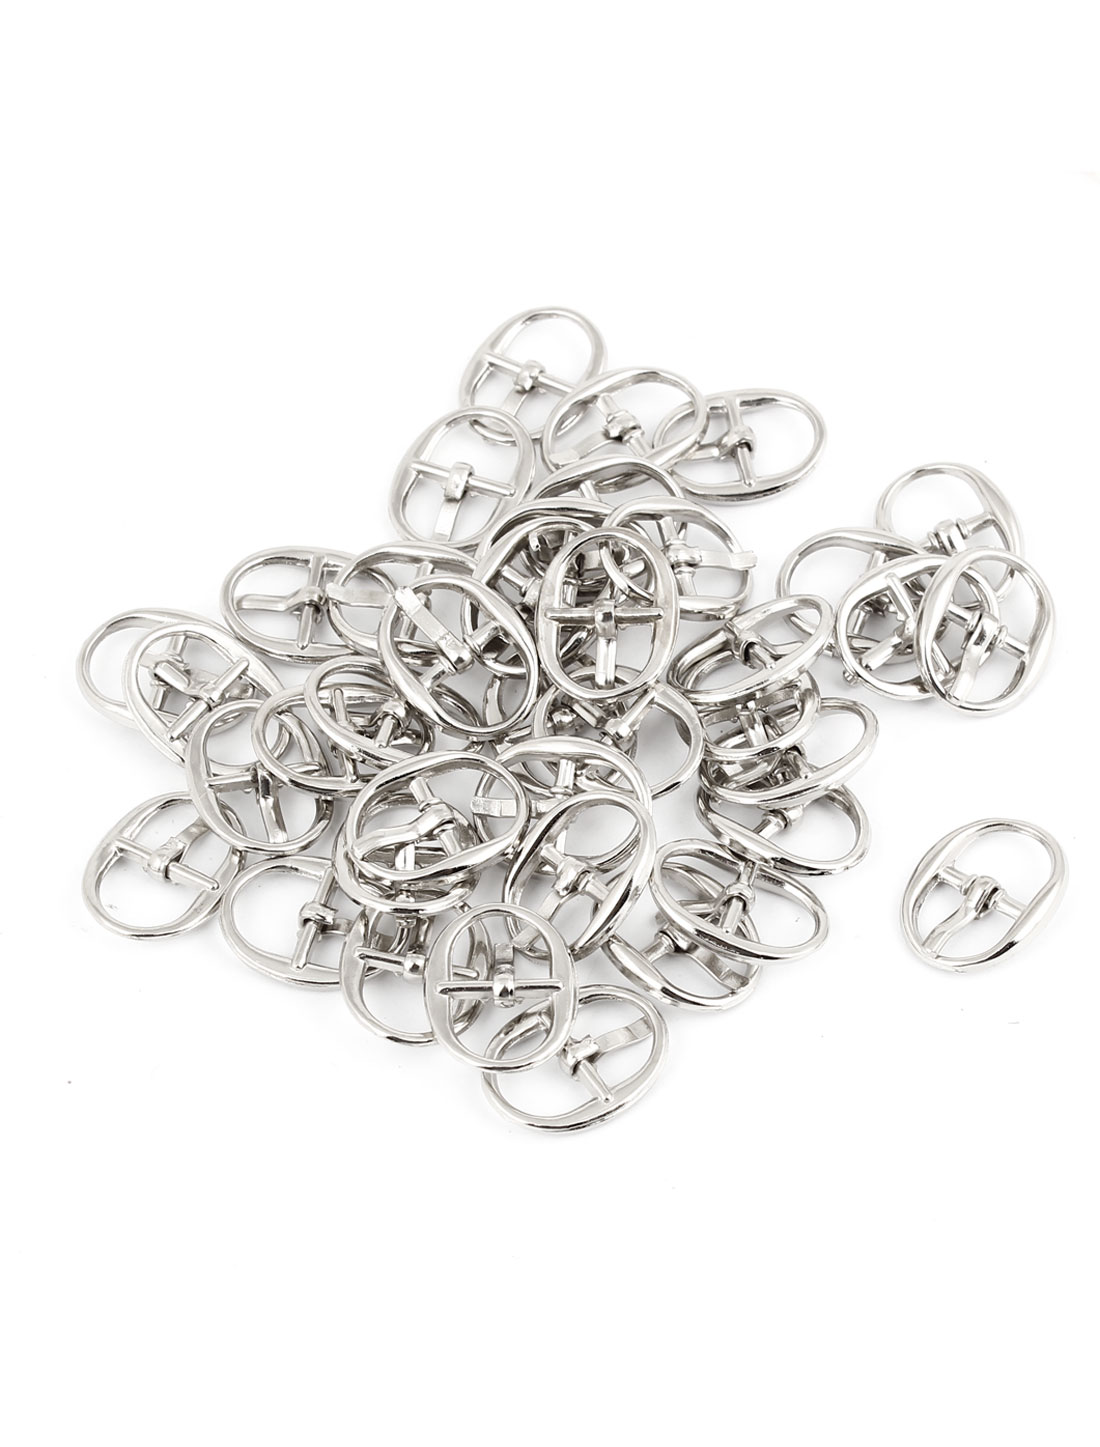 1.8cm x 1.4cm Single Prong Pin Shoes Buckles Silver Tone 40 Pieces